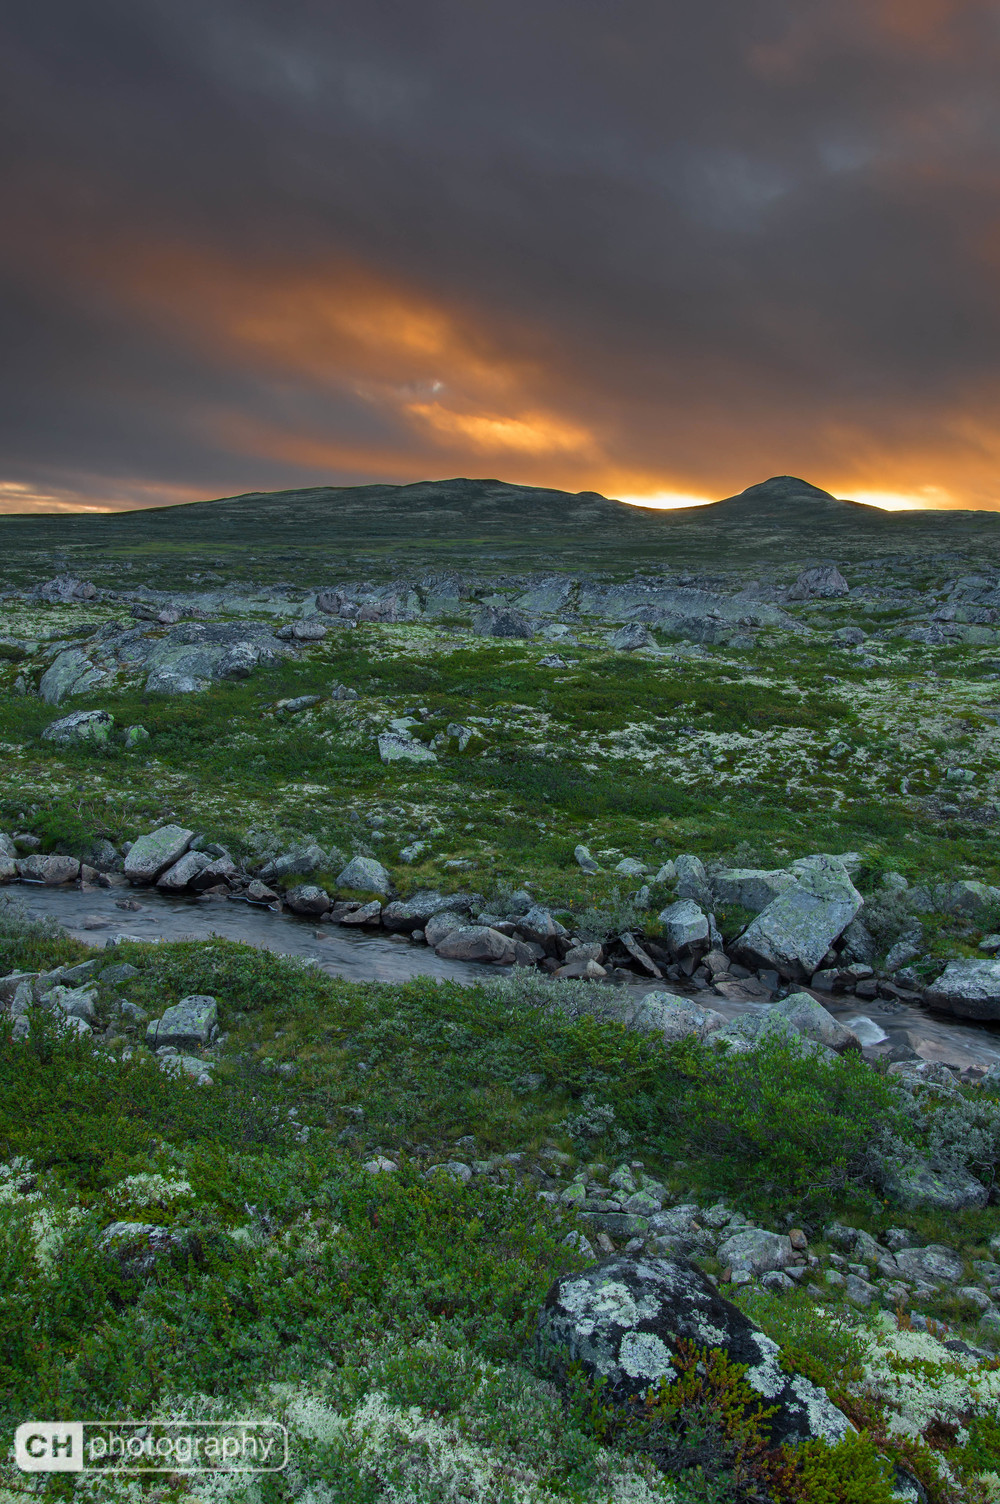 Sunrise over Norwegian landscape